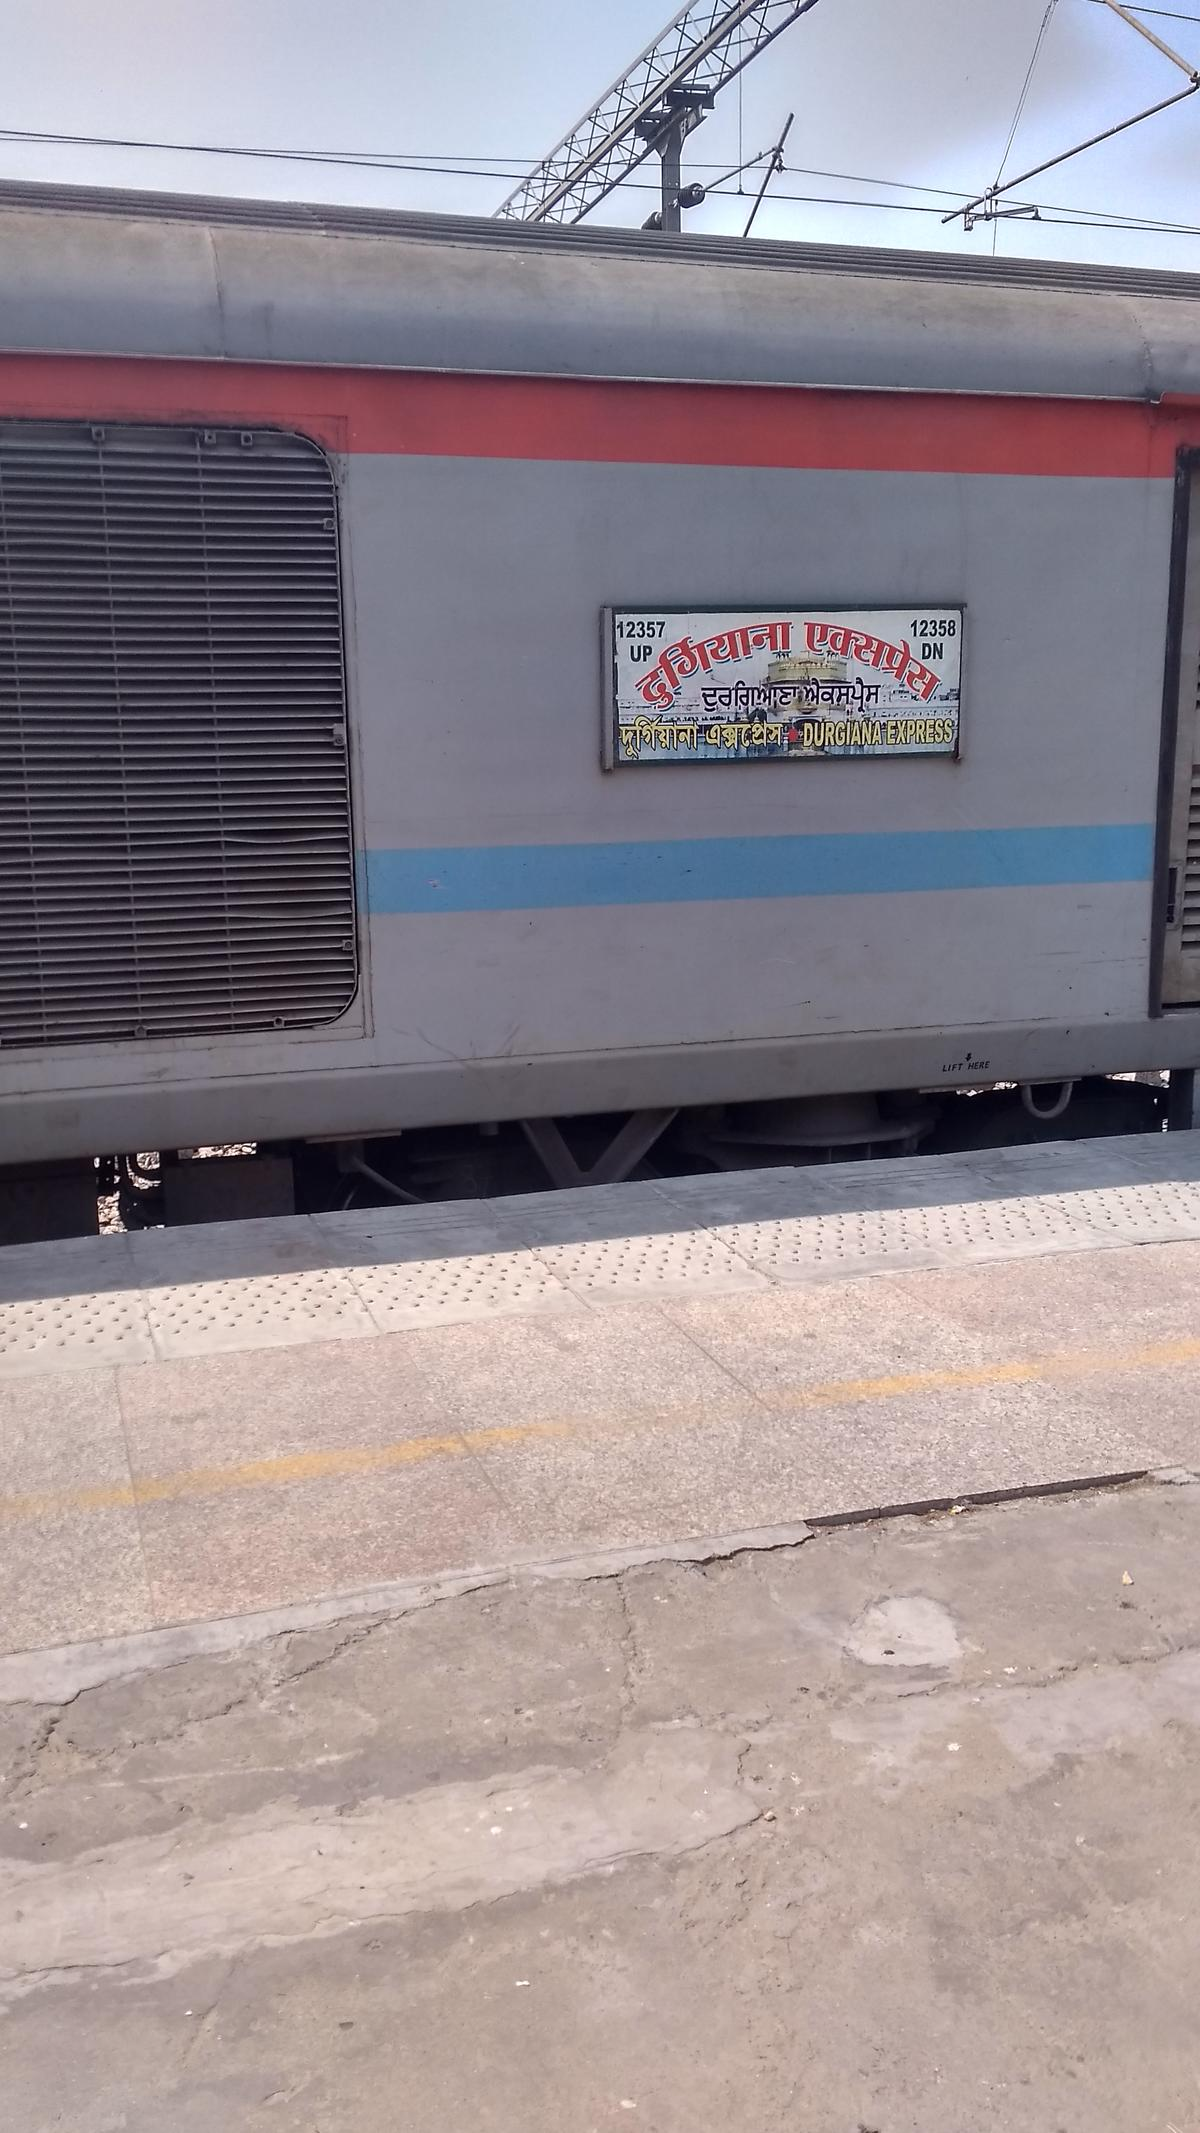 12357/Durgiana Express (PT) - Gaya to Lucknow Charbagh NR ER